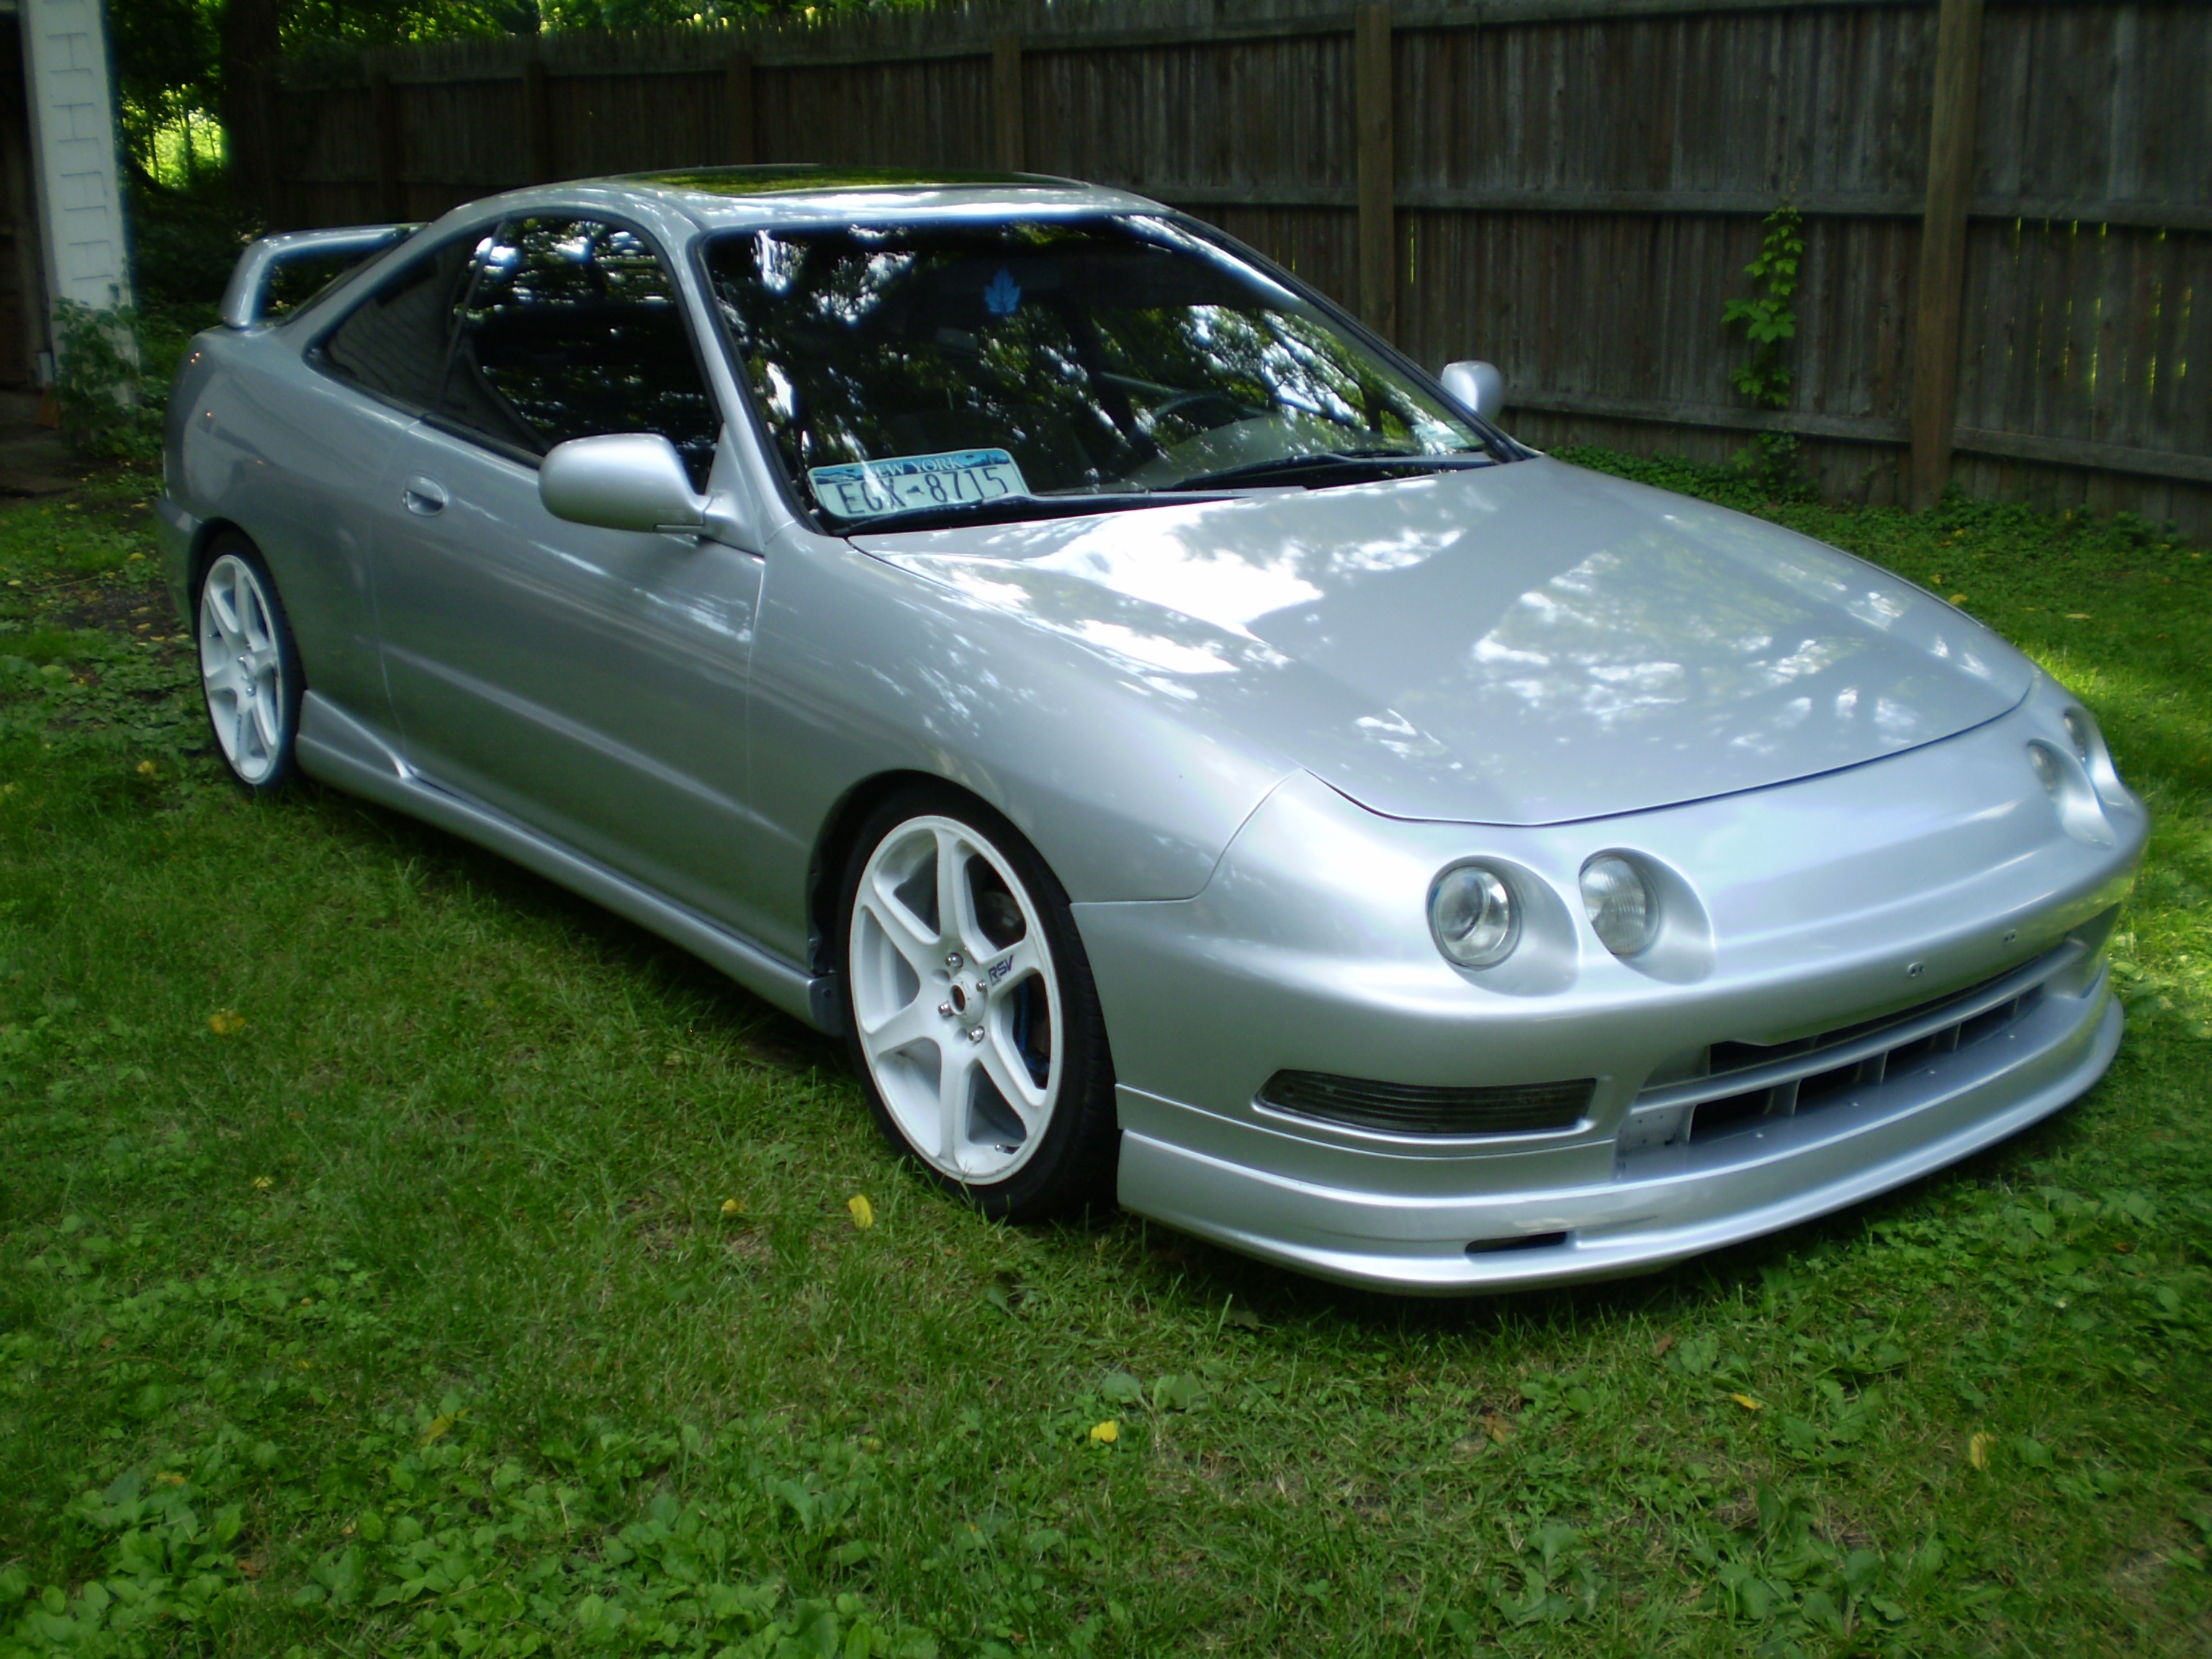 Htup B Acura Integra Gsr Brear View likewise Acuraintegracoupe likewise D Acura Integra Gsr Black Black K Bone Stock Img additionally Htup Z B Acura Integra Gsr Bfront View Jdm Front End Conversion additionally Original. on 2001 acura integra gsr